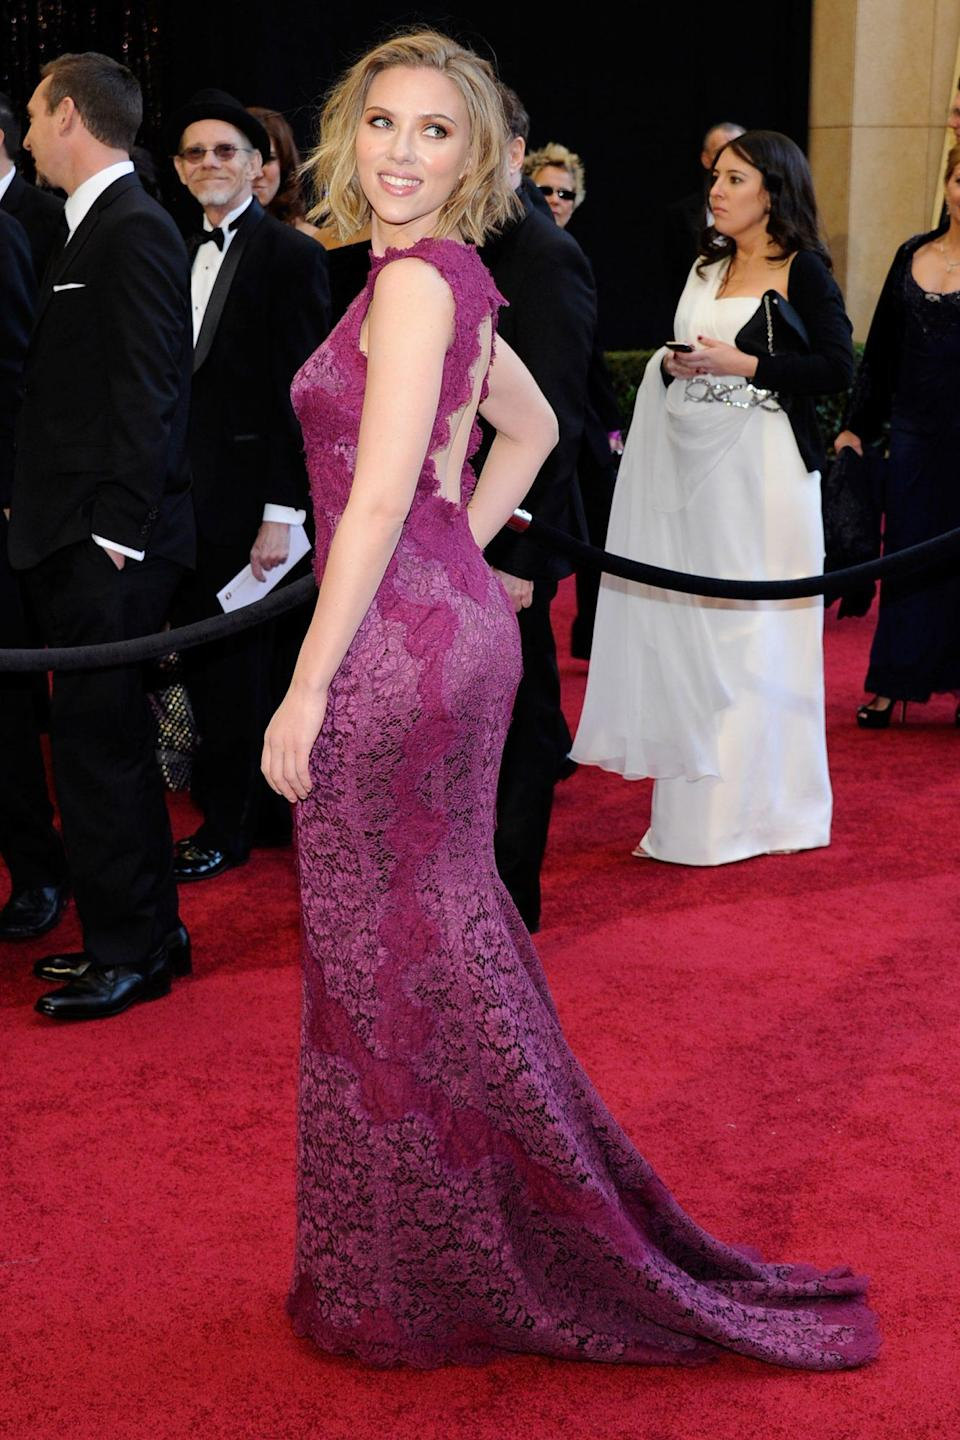 <p>Scarlett Johansson wore a magenta Dolce & Gabbana number with an open back and lots of lace. </p>